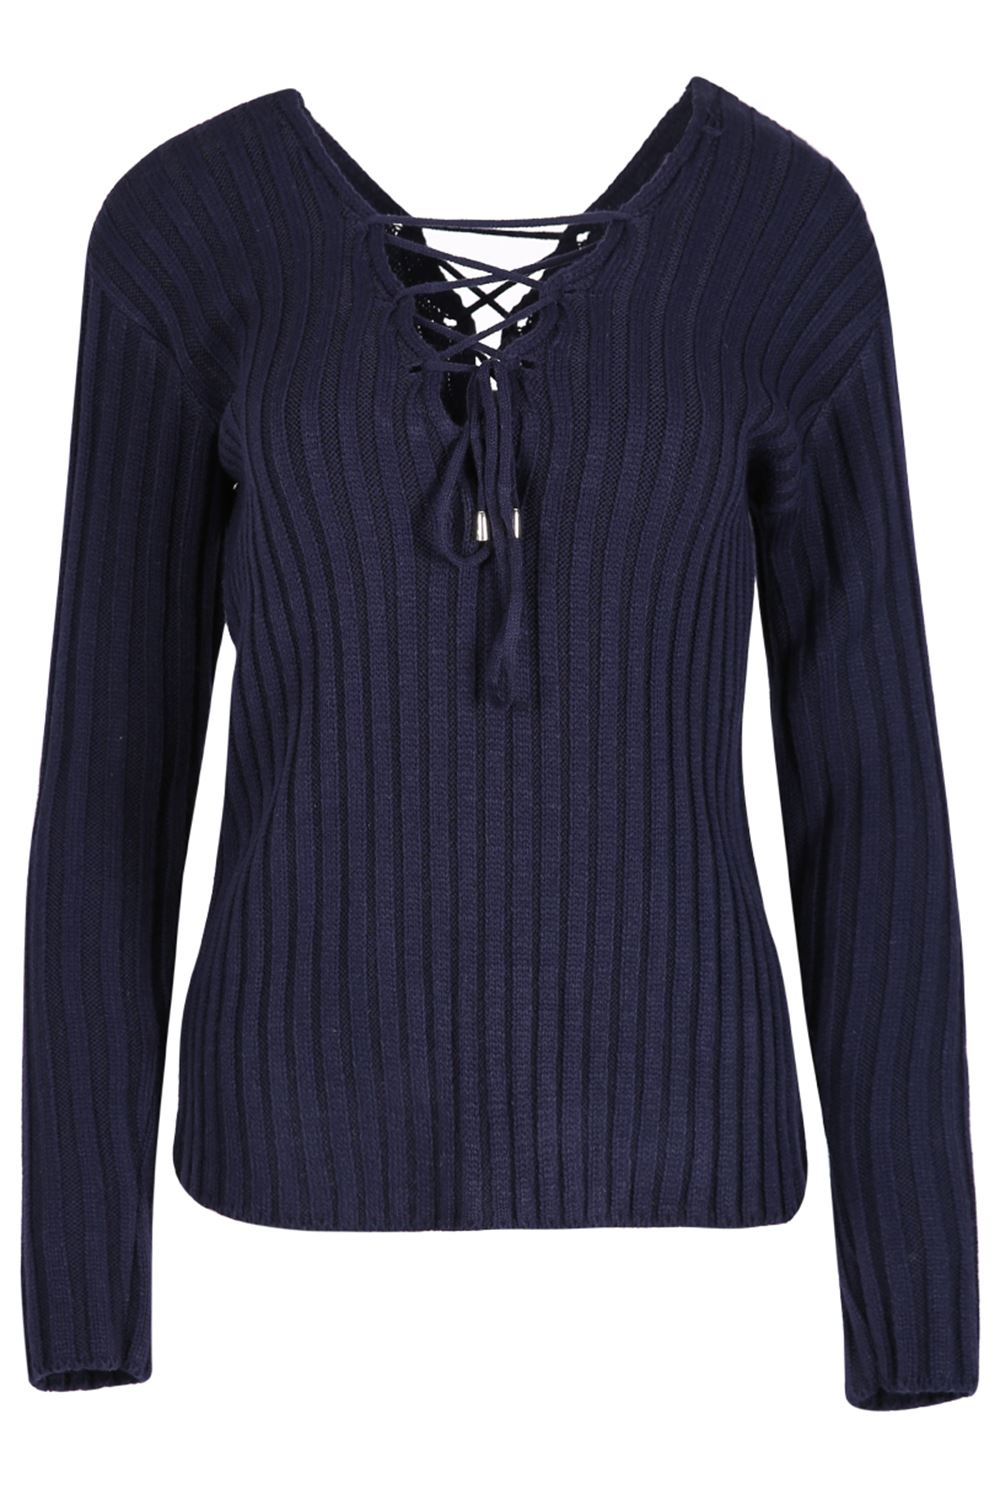 New Womens Ladies Rib Knit Front Back Eyelet Lace Up V Neck Pullover Jumper Top